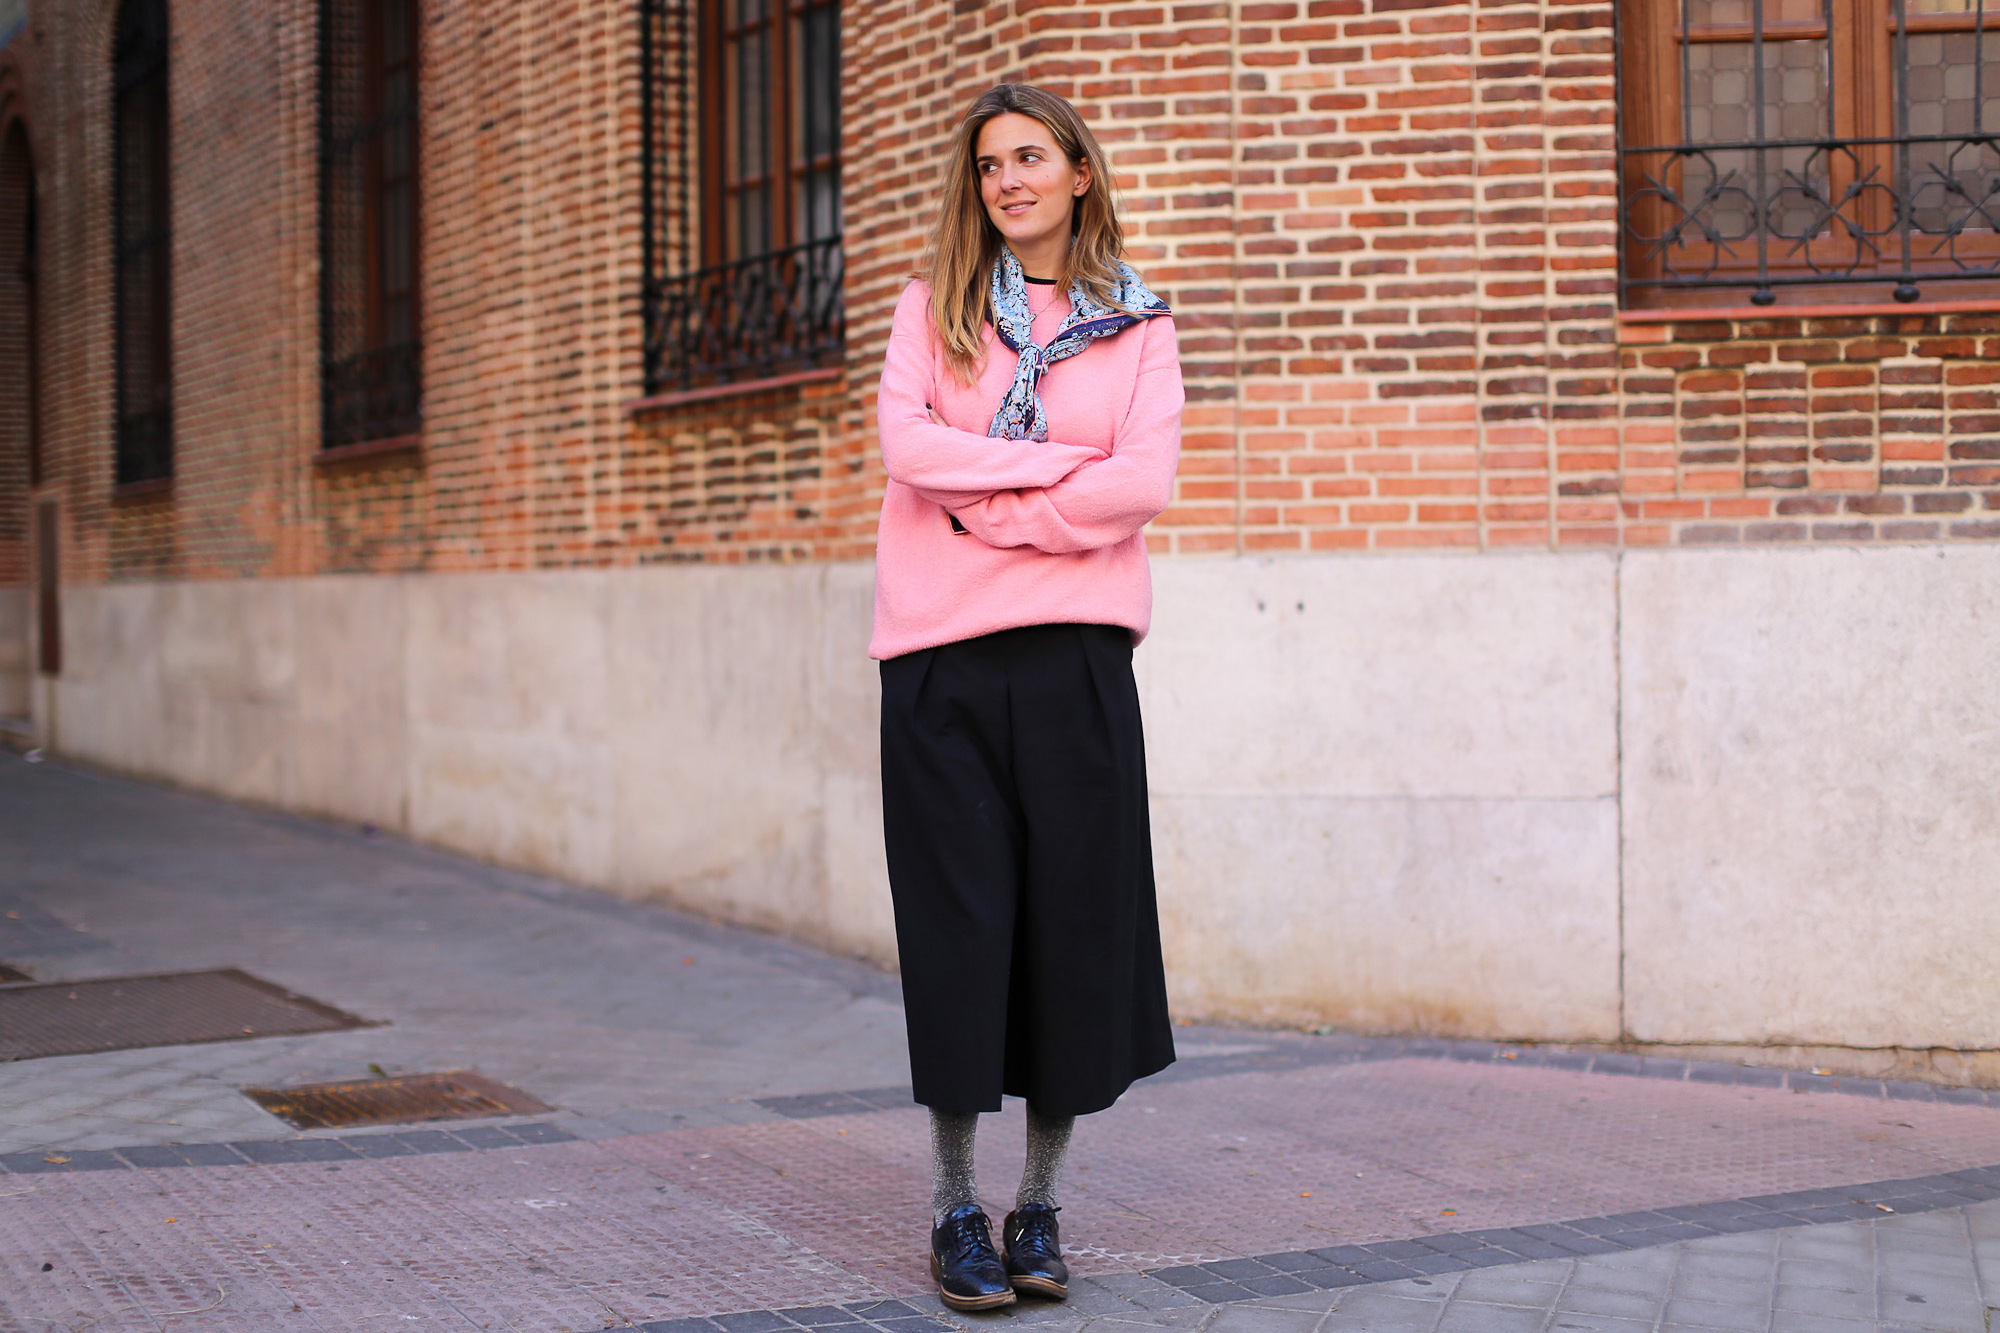 Clochet_streetstyle_fashionblogger_YouMustCreateculottetrousers_andotherstoriespinkknit_coswoolcoat-5